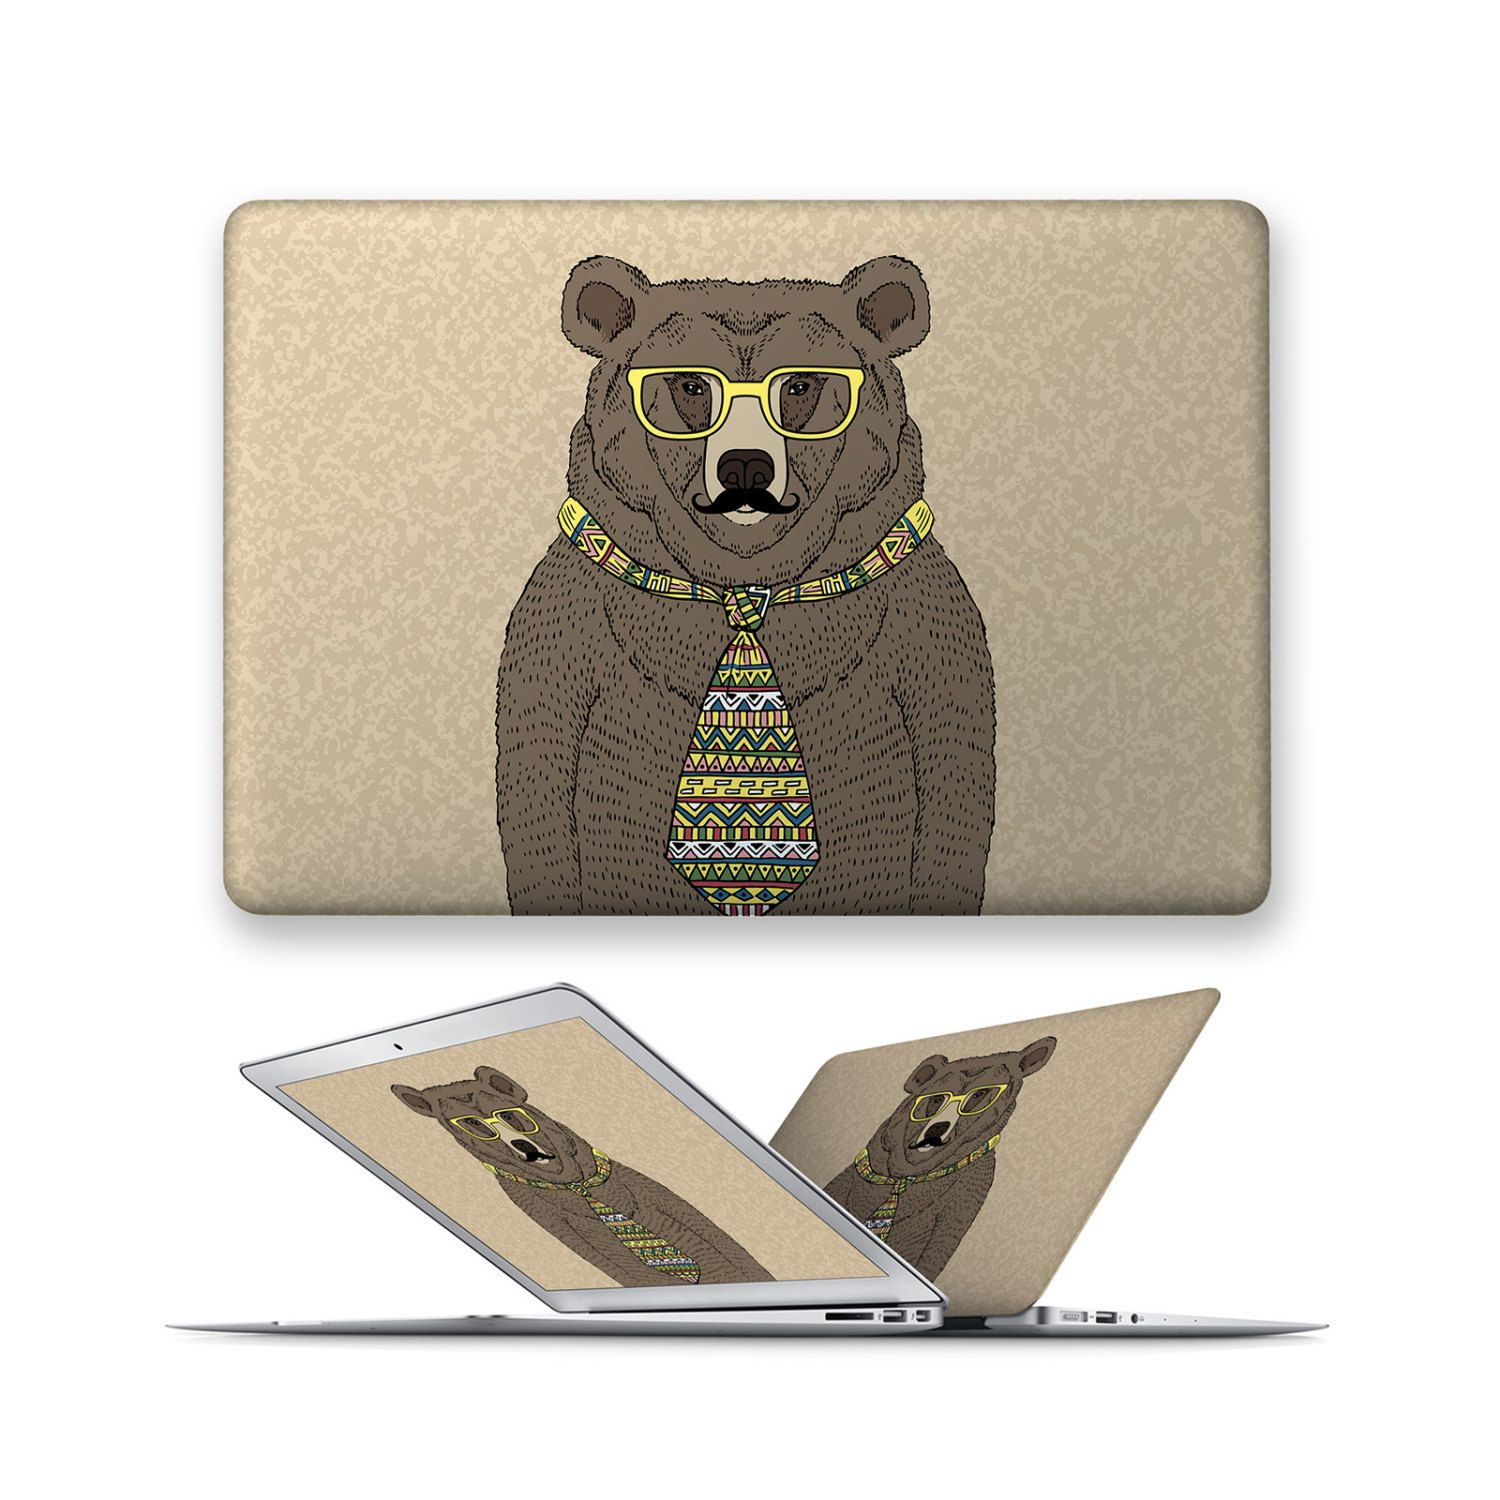 macbook decal rubberized front hard cover for apple mac